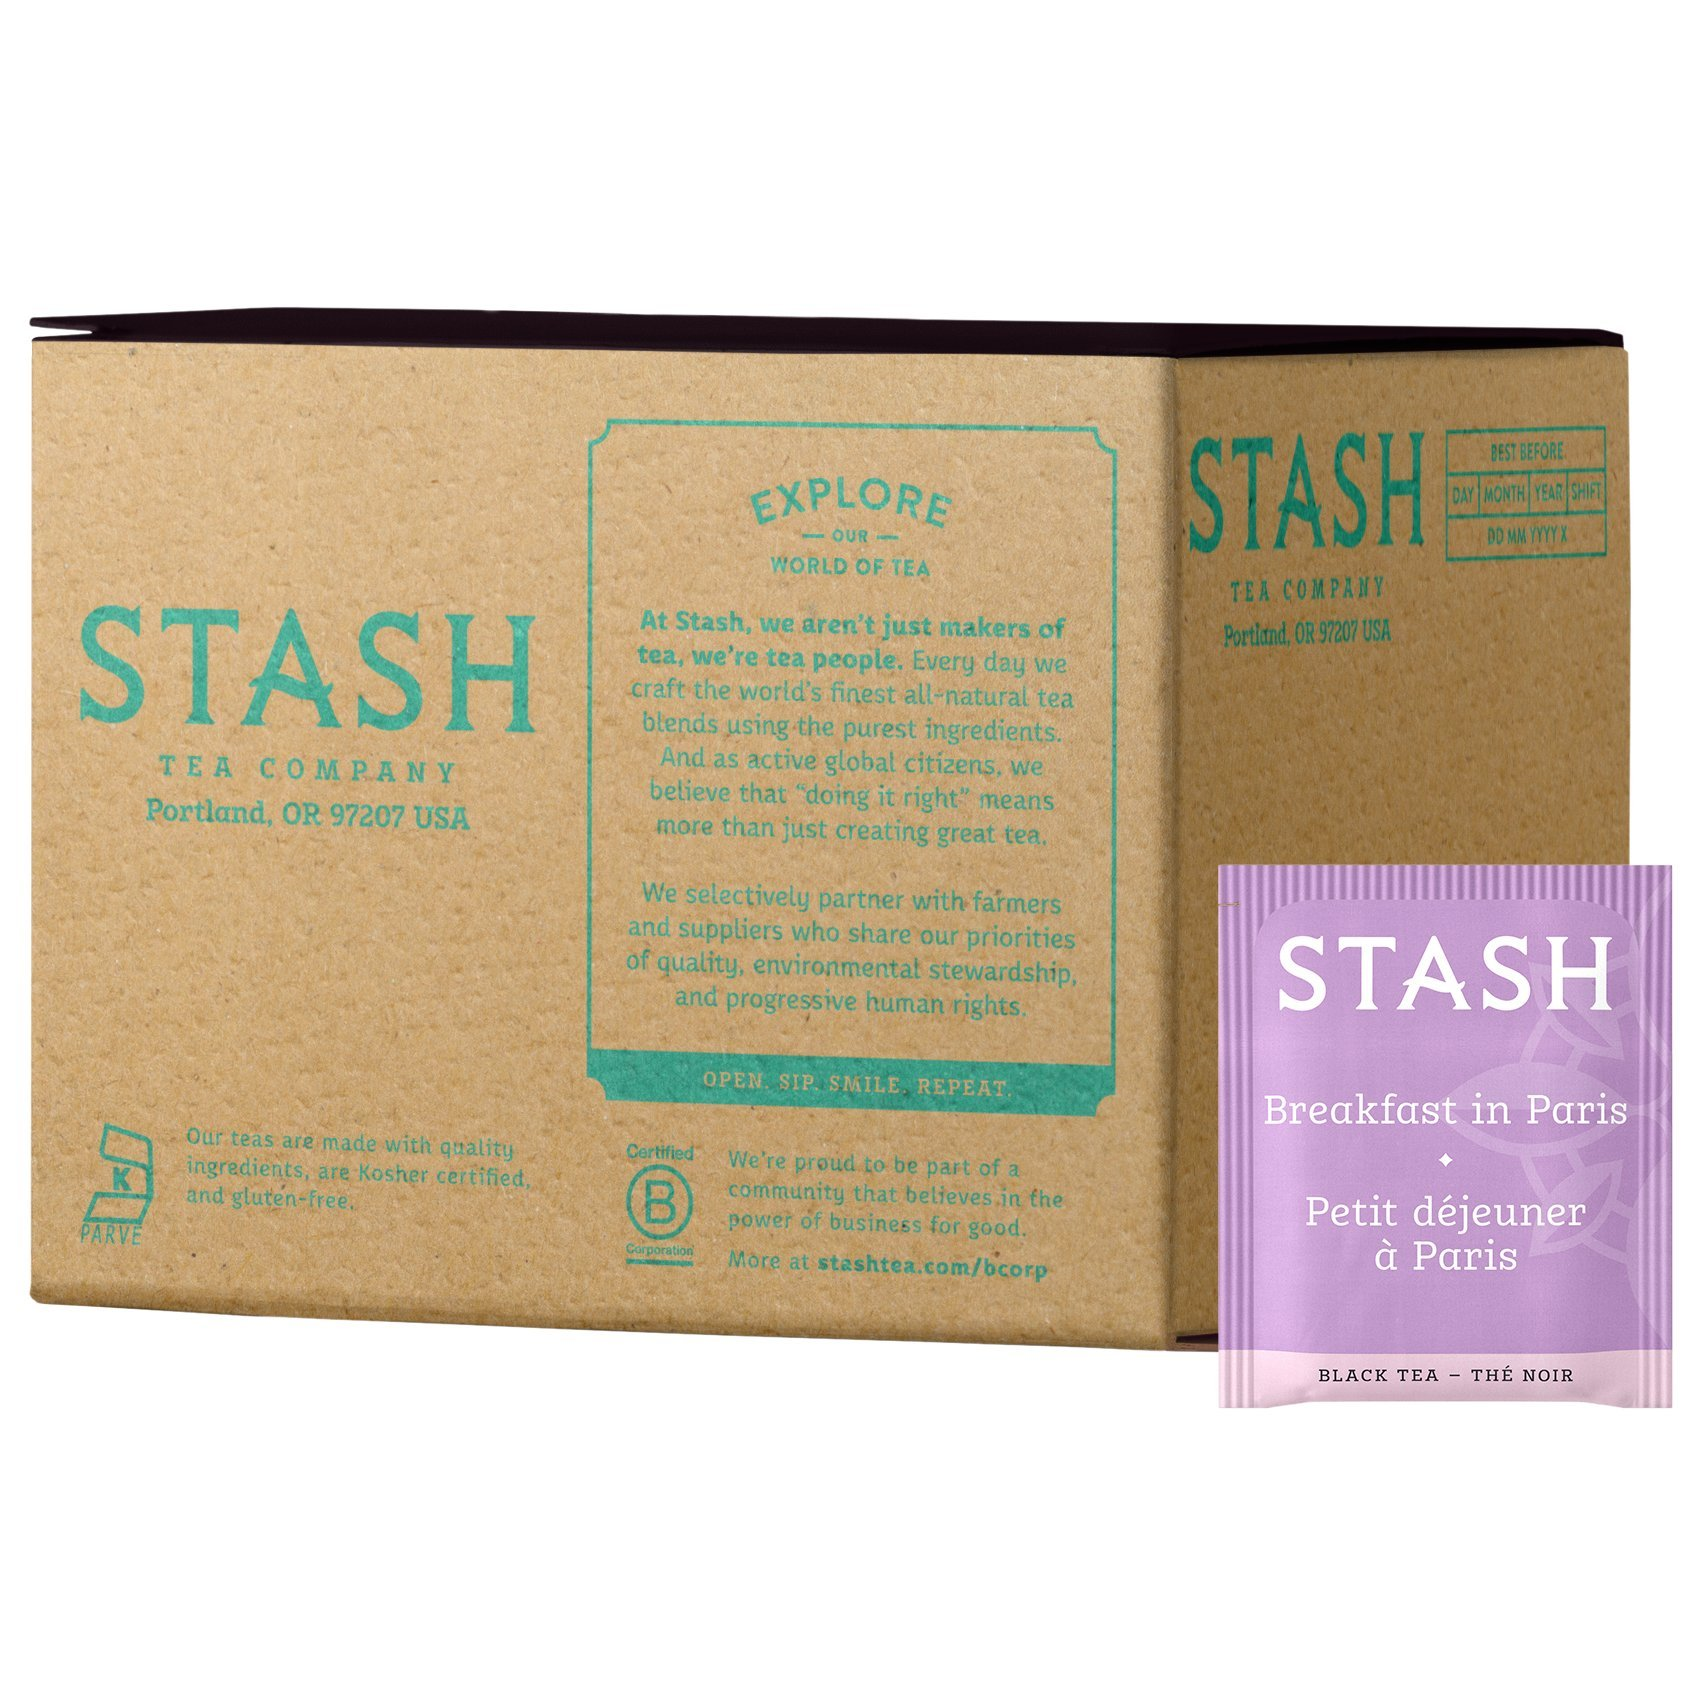 Stash Tea Breakfast in Paris Black Tea, 100 Count Box of Tea Bags in Foil Individual Black Tea Bags for Use in Teapots Mugs or Cups, Brew Hot Tea or Iced Tea by Stash Tea